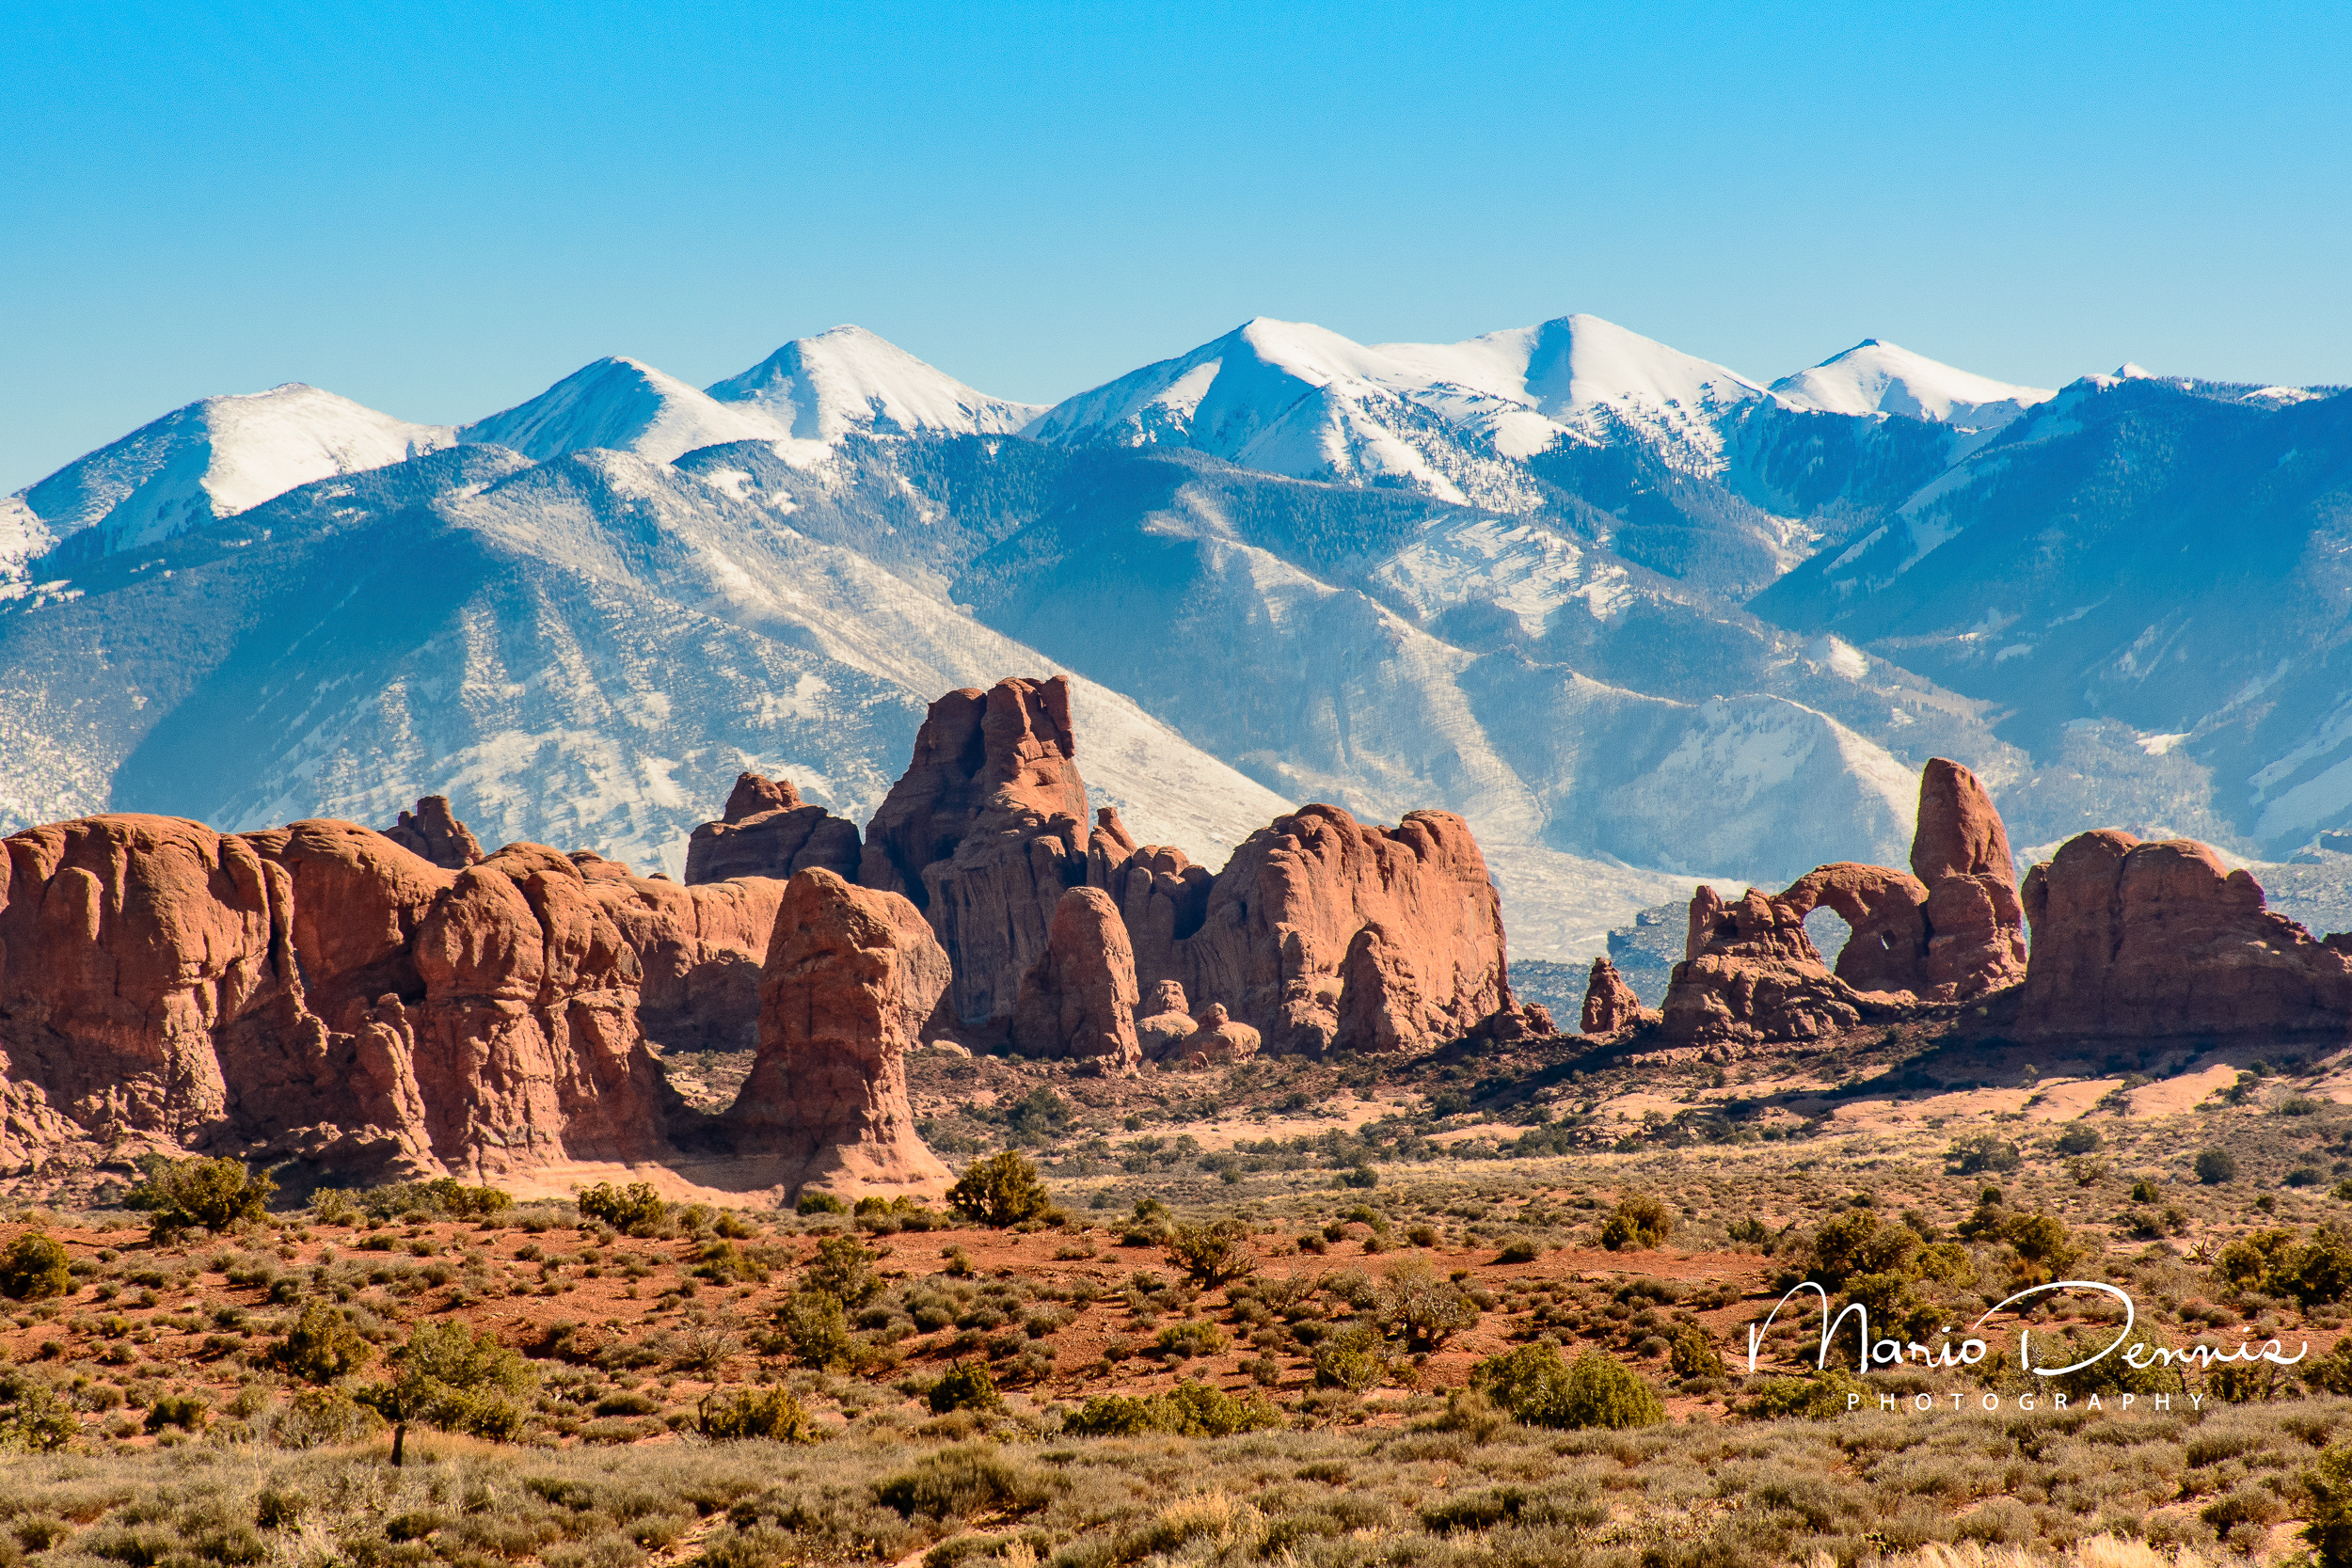 La Sal Mountains from Arches NP, UT